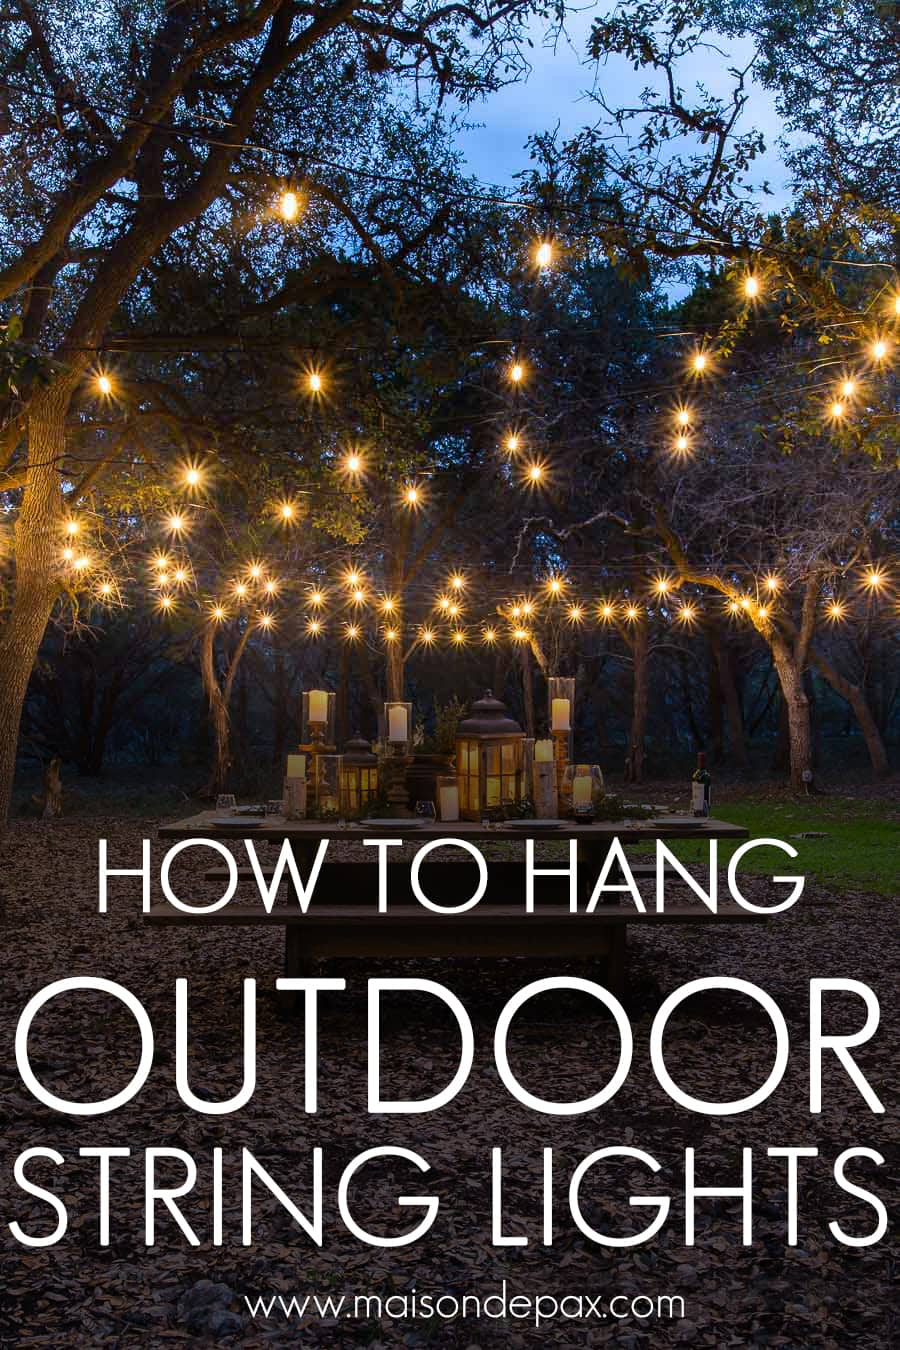 gorgeous globe string lights over a picnic table outdoors | Maison de Pax